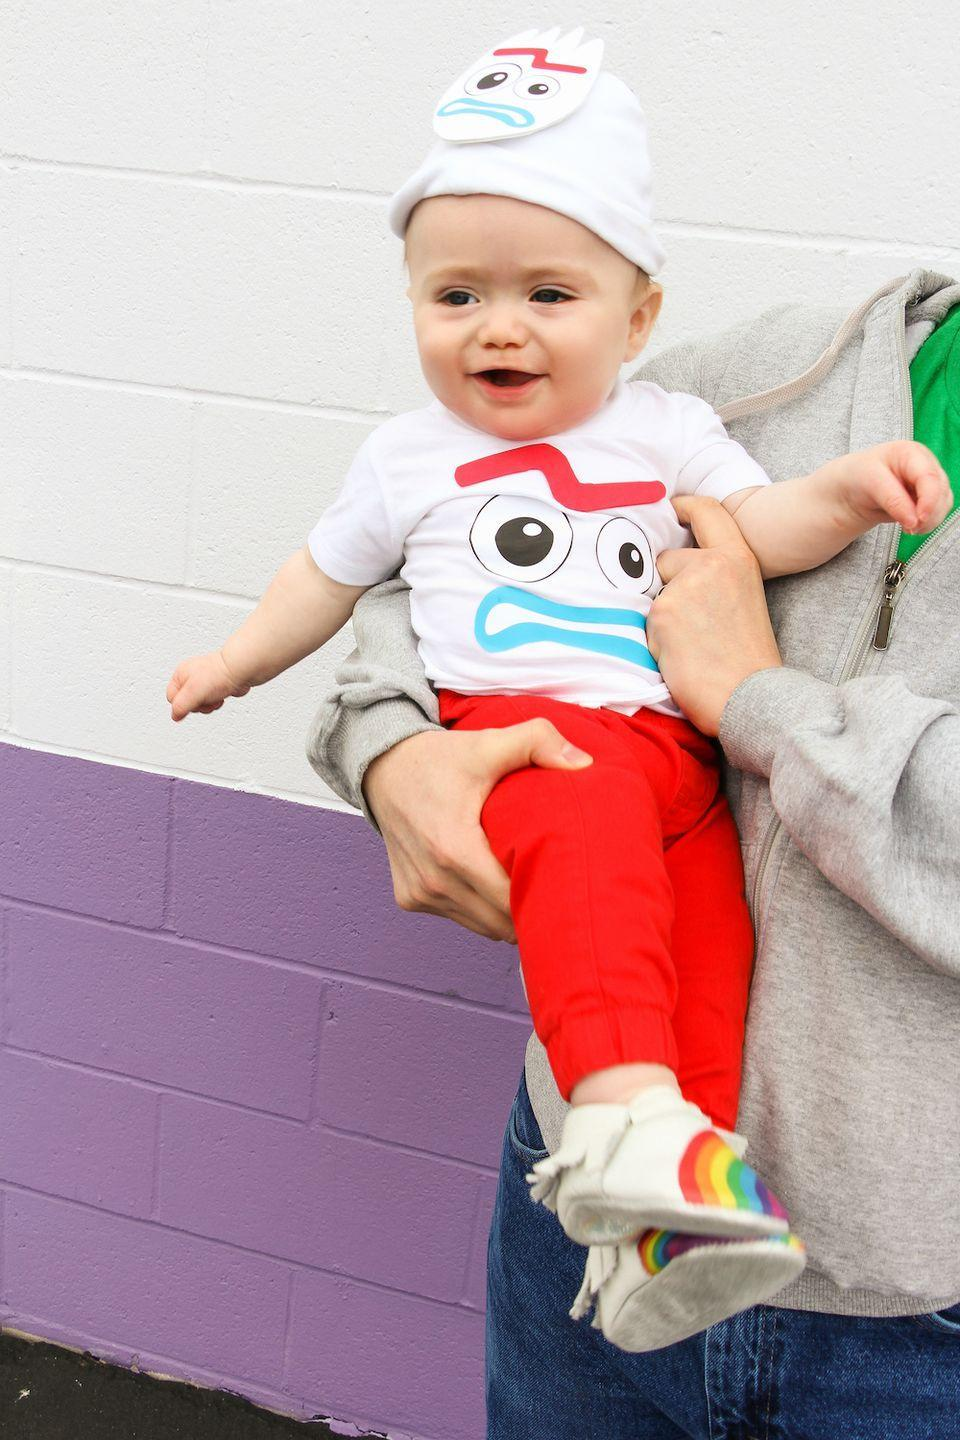 """<p>He may not think he's a toy, but he sure does make one adorable DIY Halloween costume idea.</p><p><em><a href=""""https://briteandbubbly.com/diy-toy-story-4-forky-mommy-and-me-outfit/"""" rel=""""nofollow noopener"""" target=""""_blank"""" data-ylk=""""slk:Get the tutorial at Brite and Bubbly »"""" class=""""link rapid-noclick-resp"""">Get the tutorial at Brite and Bubbly »</a></em></p><p><strong>RELATED: </strong><a href=""""https://www.goodhousekeeping.com/holidays/halloween-ideas/g28380986/best-toy-story-halloween-costumes/"""" rel=""""nofollow noopener"""" target=""""_blank"""" data-ylk=""""slk:The Best Toy Story Costumes for Halloween"""" class=""""link rapid-noclick-resp"""">The Best <em>Toy Story</em> Costumes for Halloween</a><br></p>"""